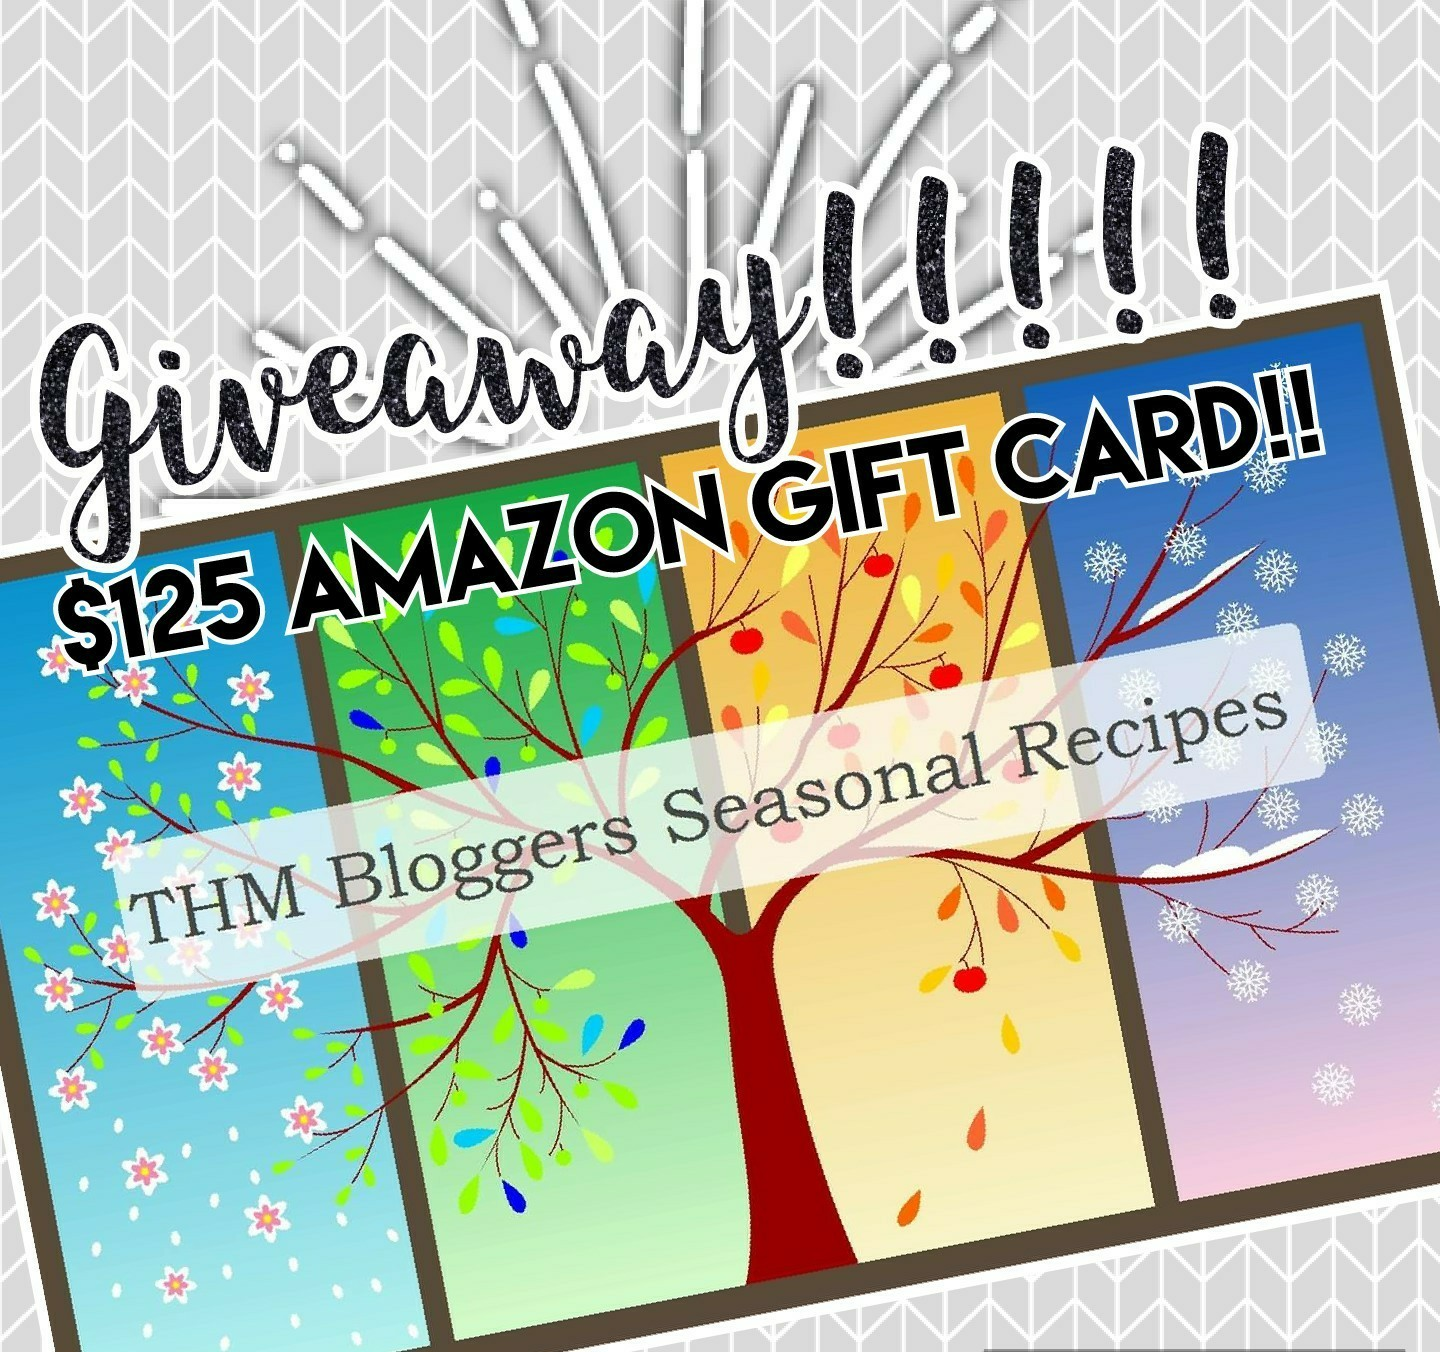 Seasonal Bloggers Giveaway